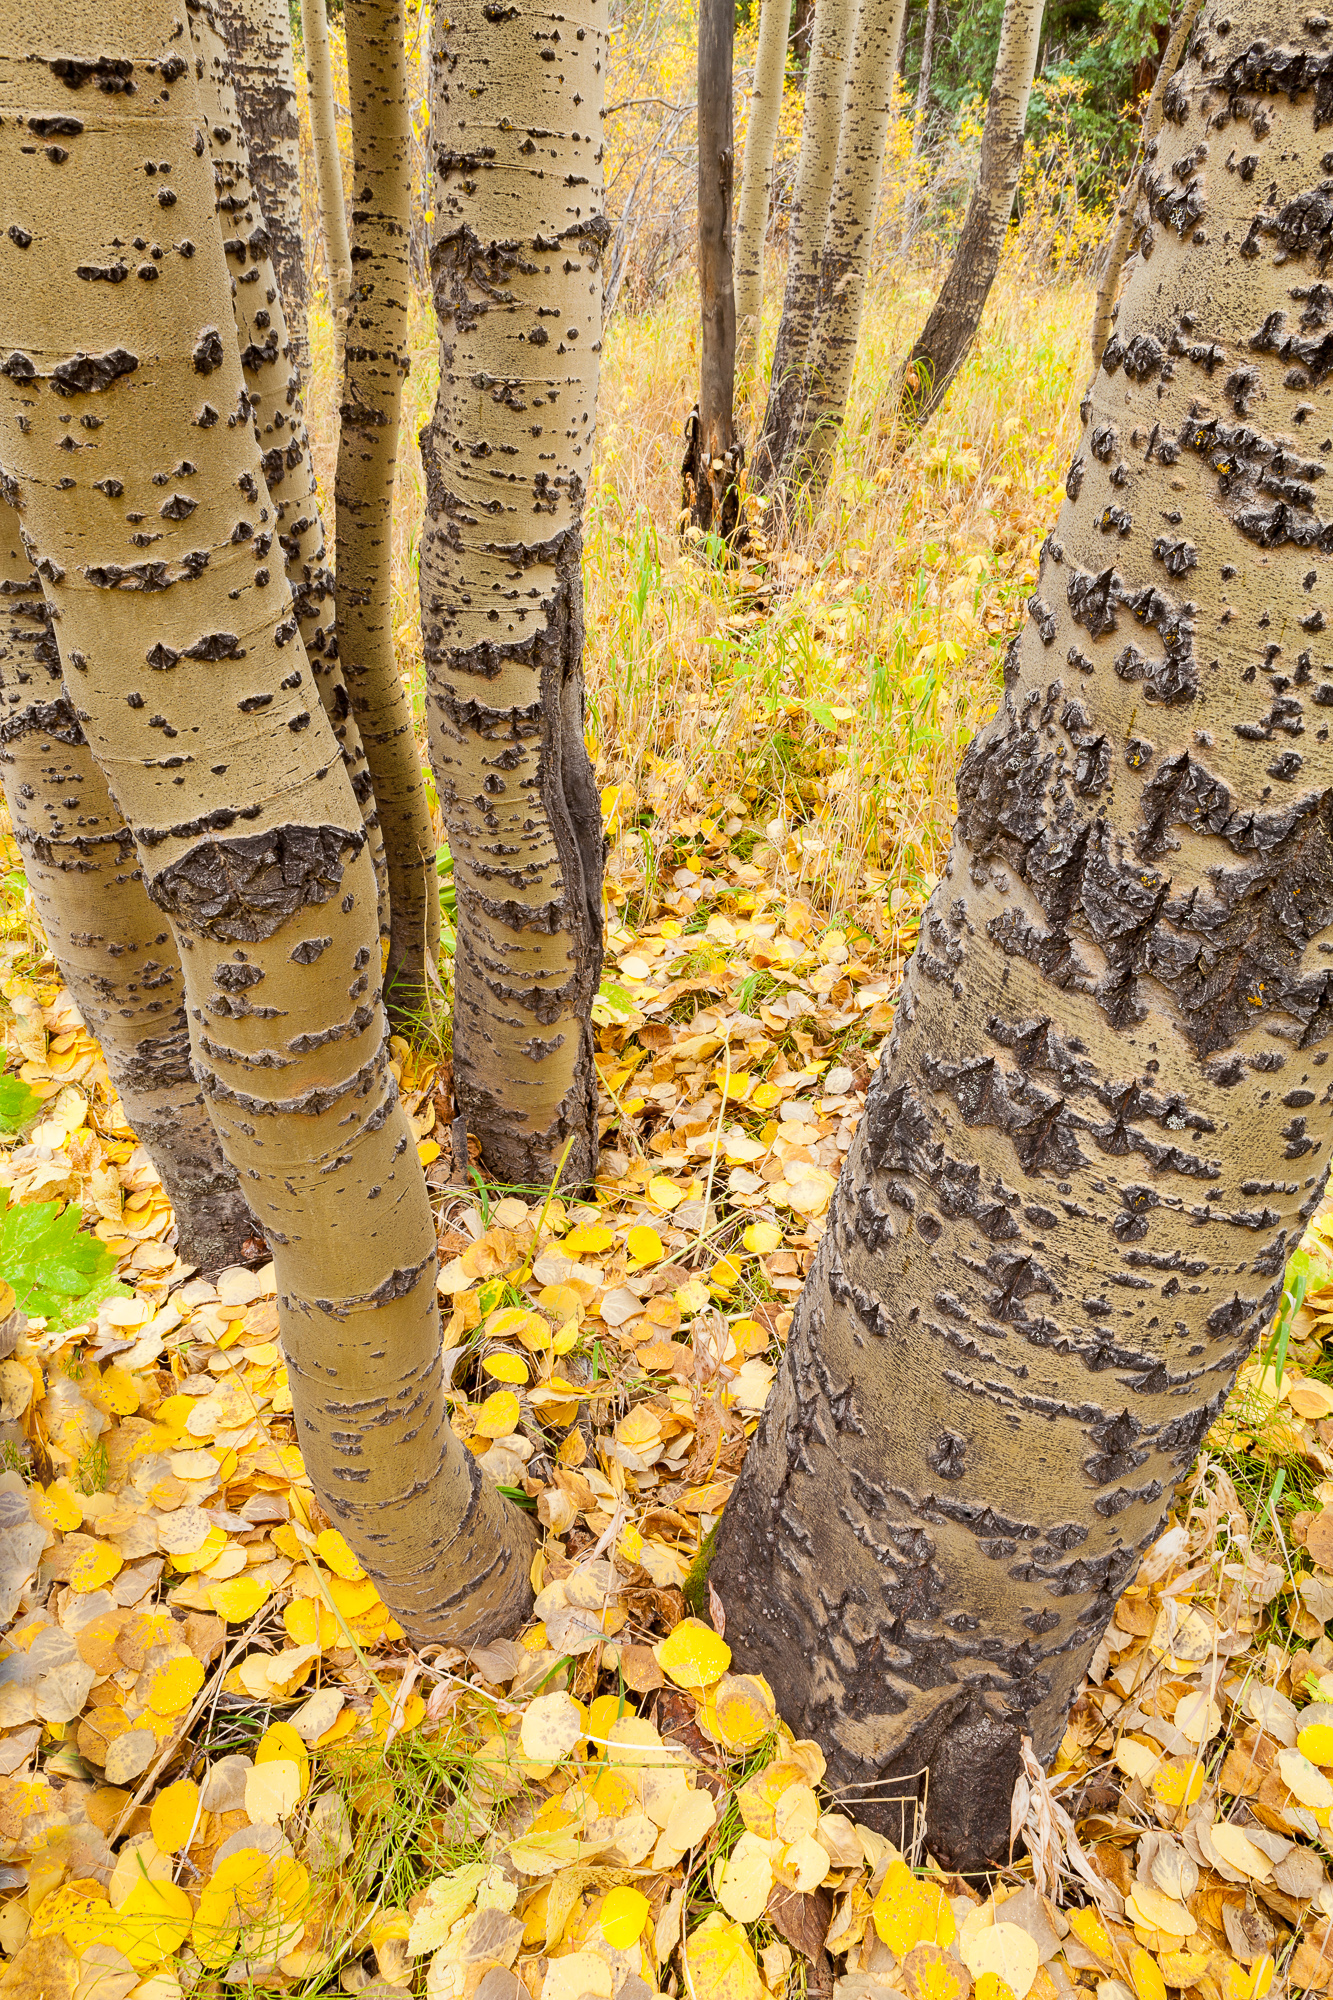 Fallen aspen leaves carpet the forest floor casting the trunks in a golden white